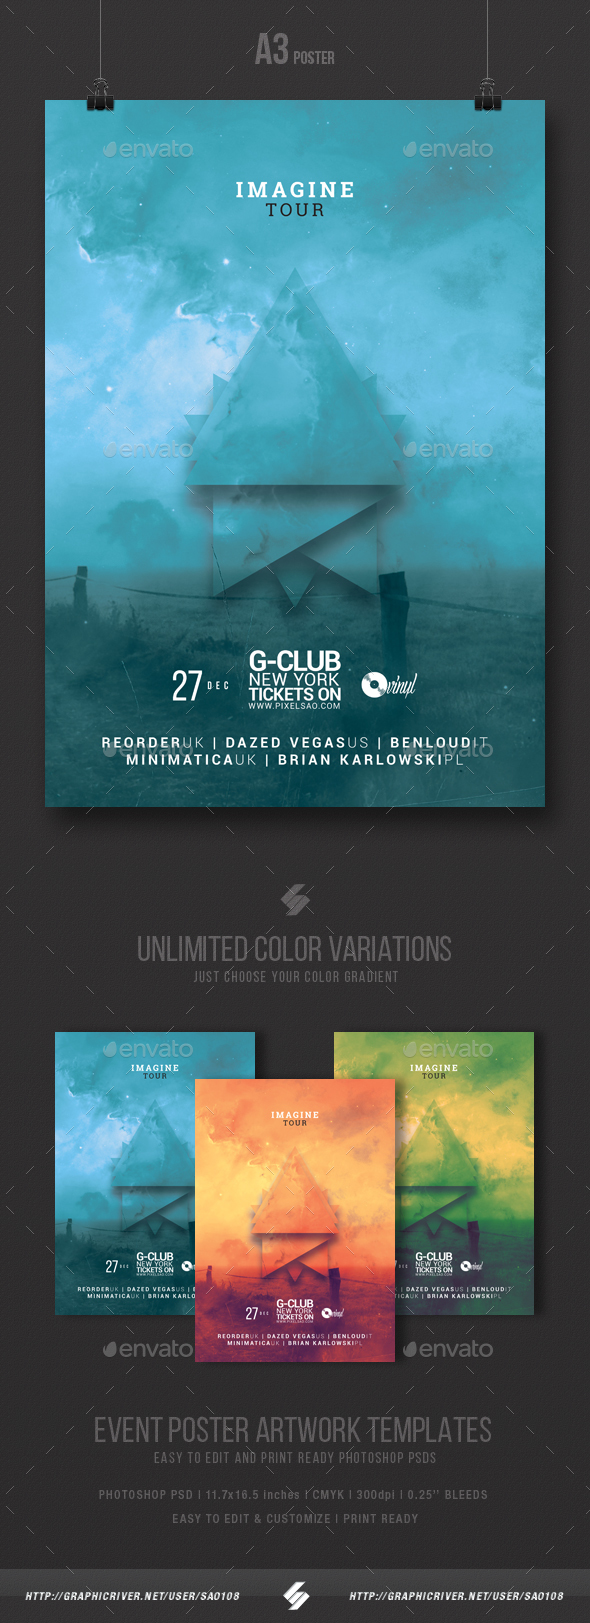 Imagine Tour - Minimal Party Flyer / Poster Template A3 - Clubs & Parties Events